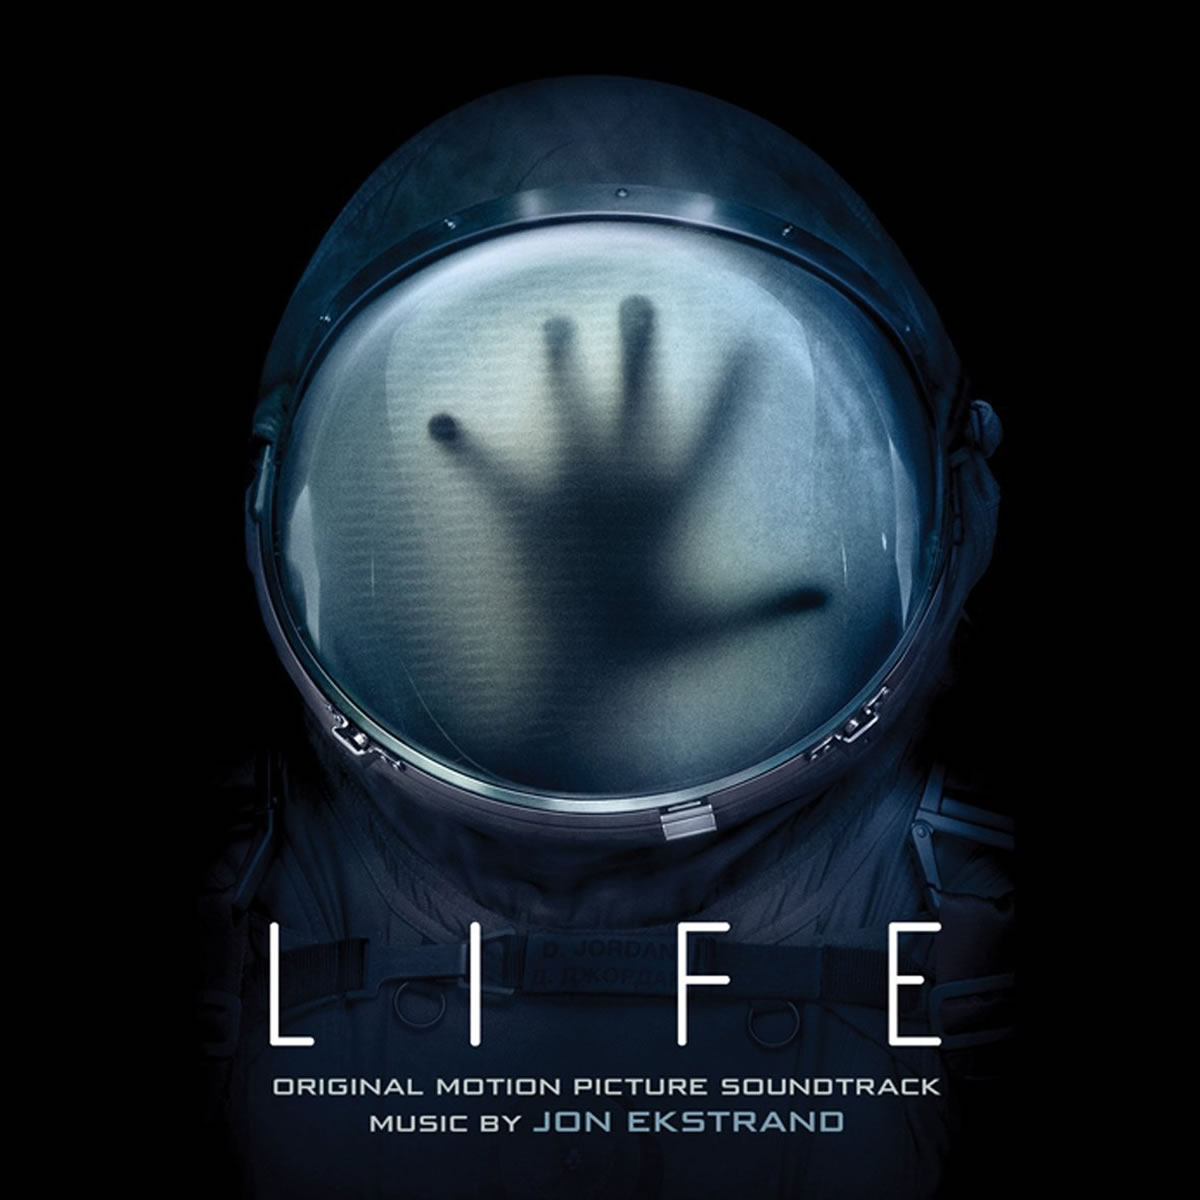 LIFE [2017] - ORIGINAL MOTION PICTURE SOUNDTRACK (AUDIO CD)